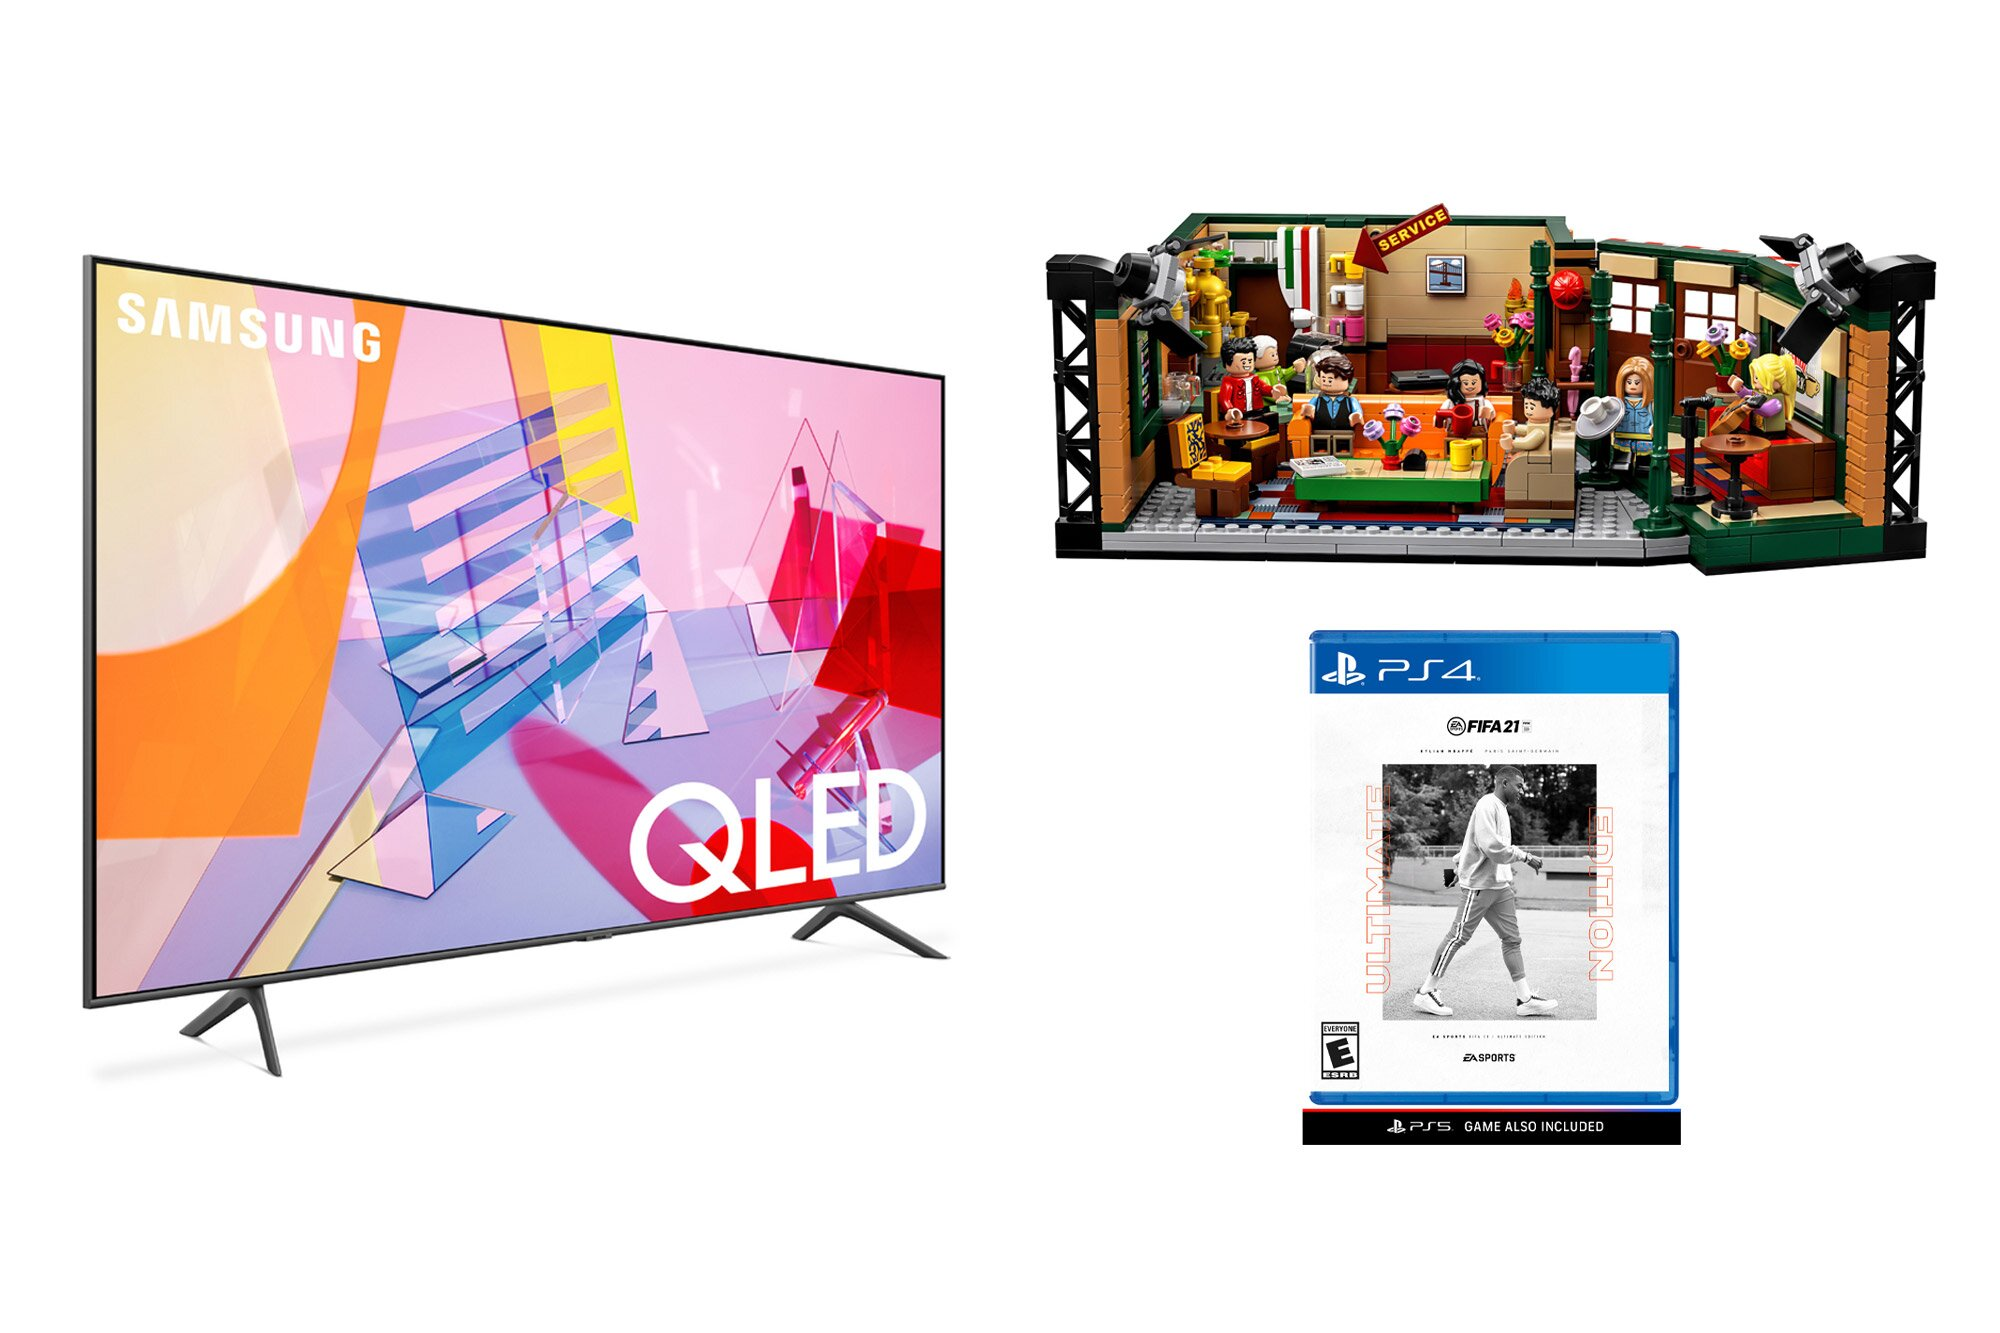 Walmart Early Black Friday Deals Tvs Gaming And More Ew Com